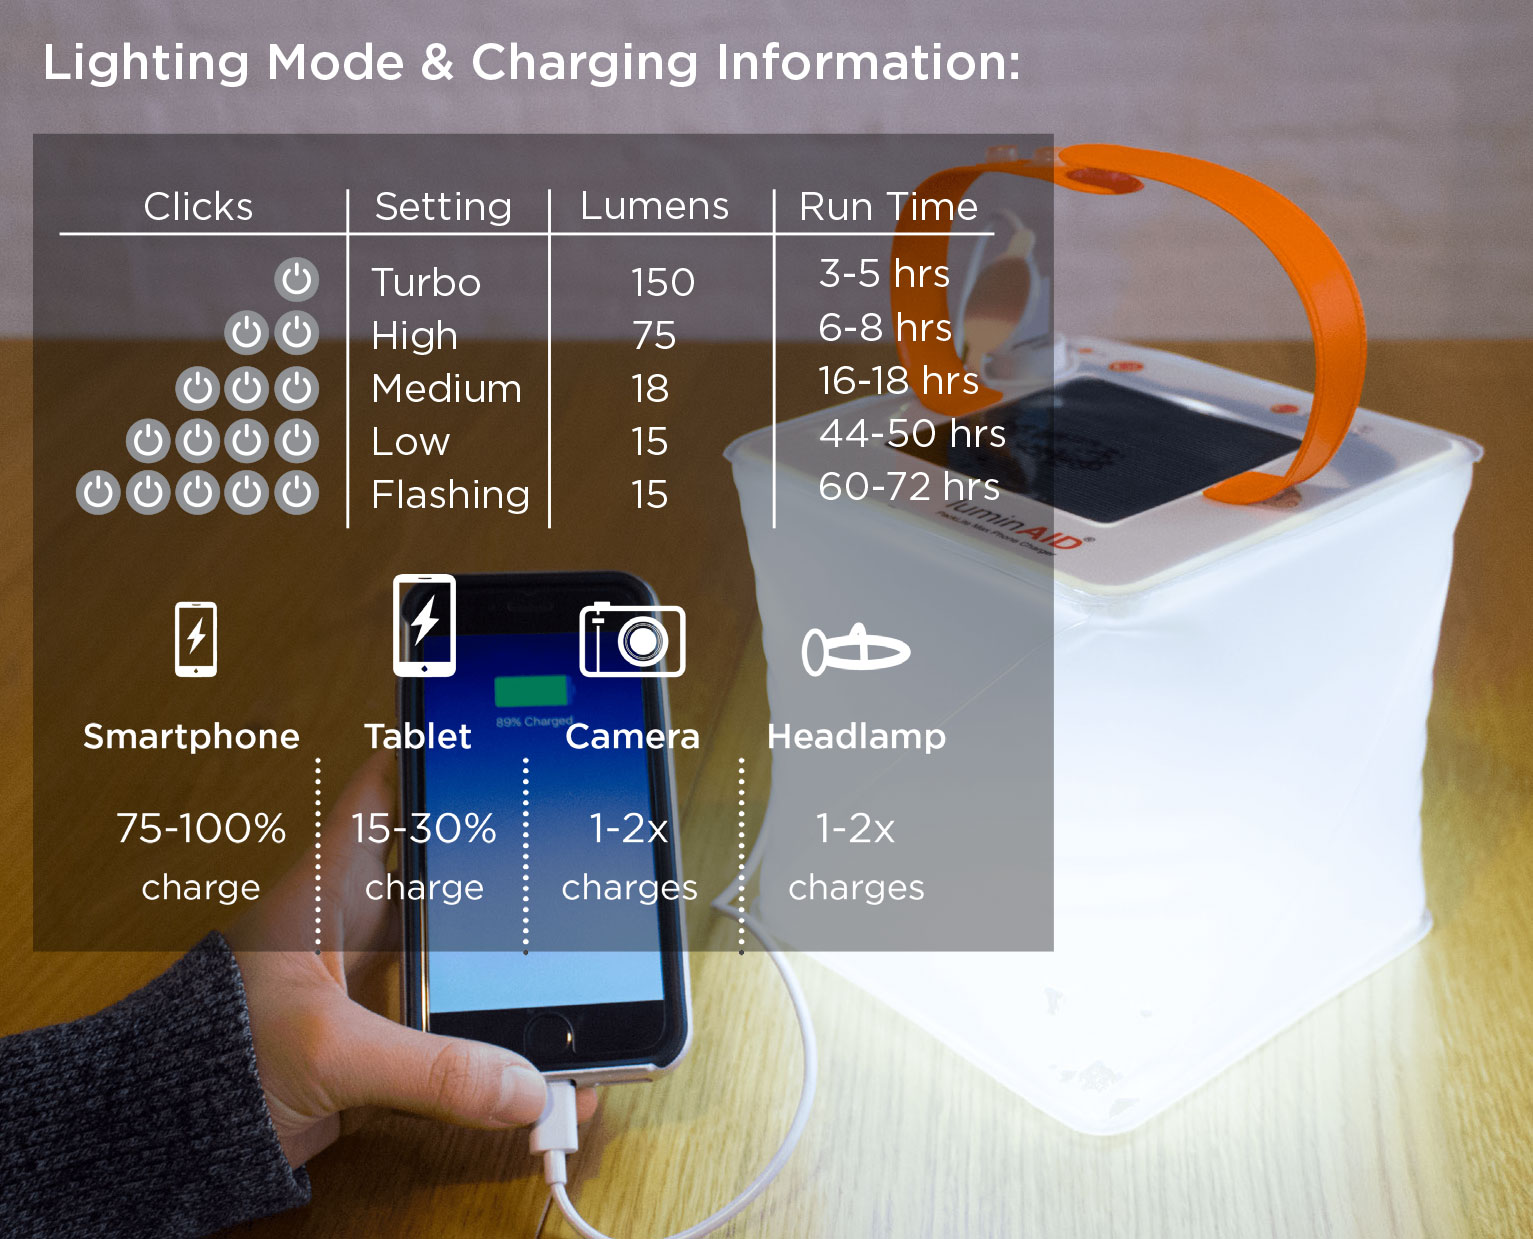 liminaid PackLite Max 2-in-1 Phone Charger lighting mode chart